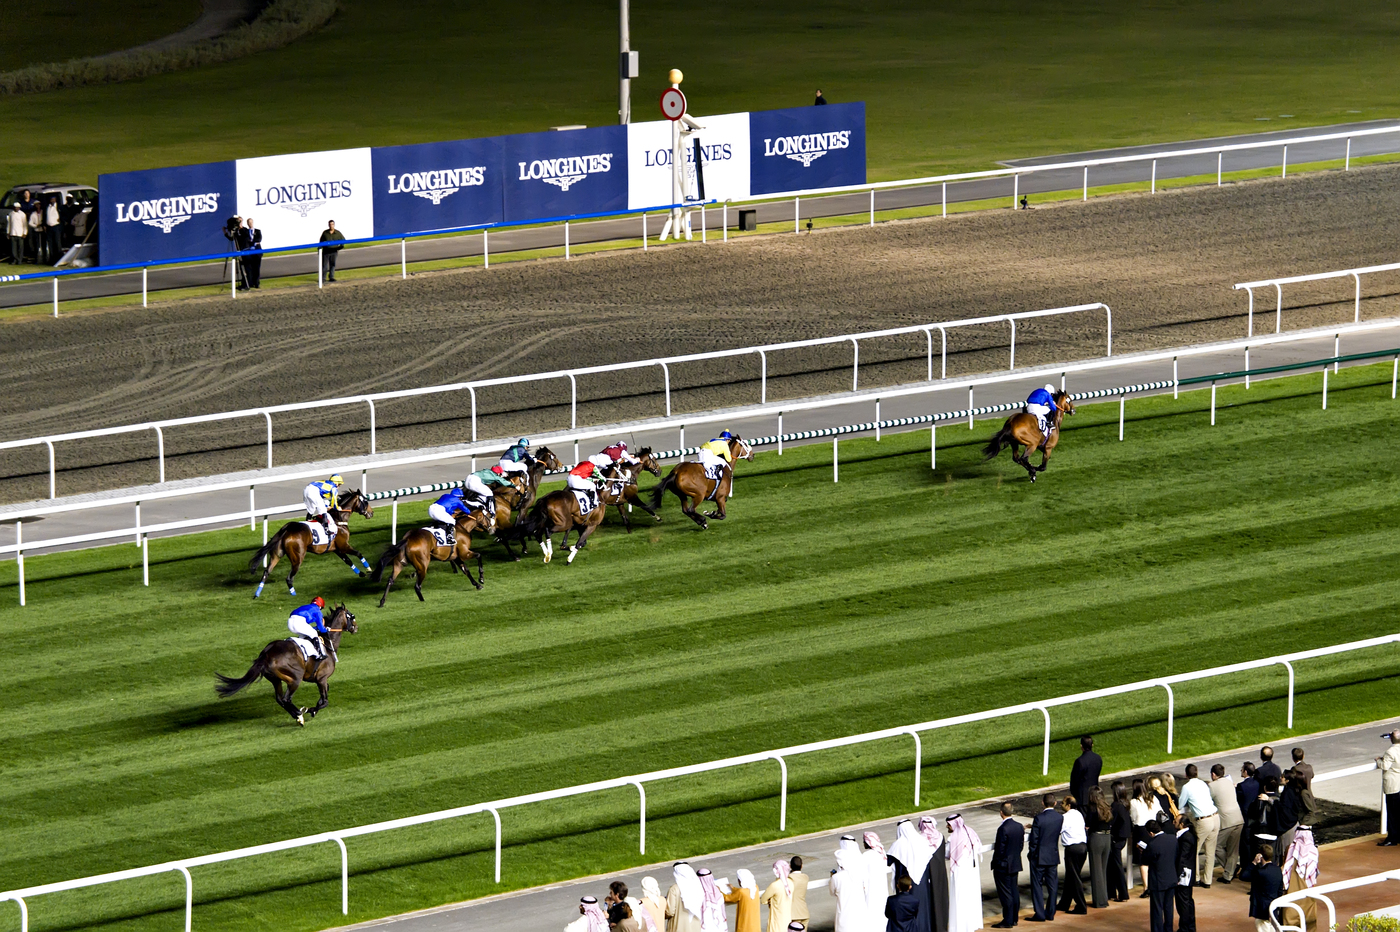 Longines Flat Racing Event: Longines proclaims long-term partnership with the elite Meydan Group 4